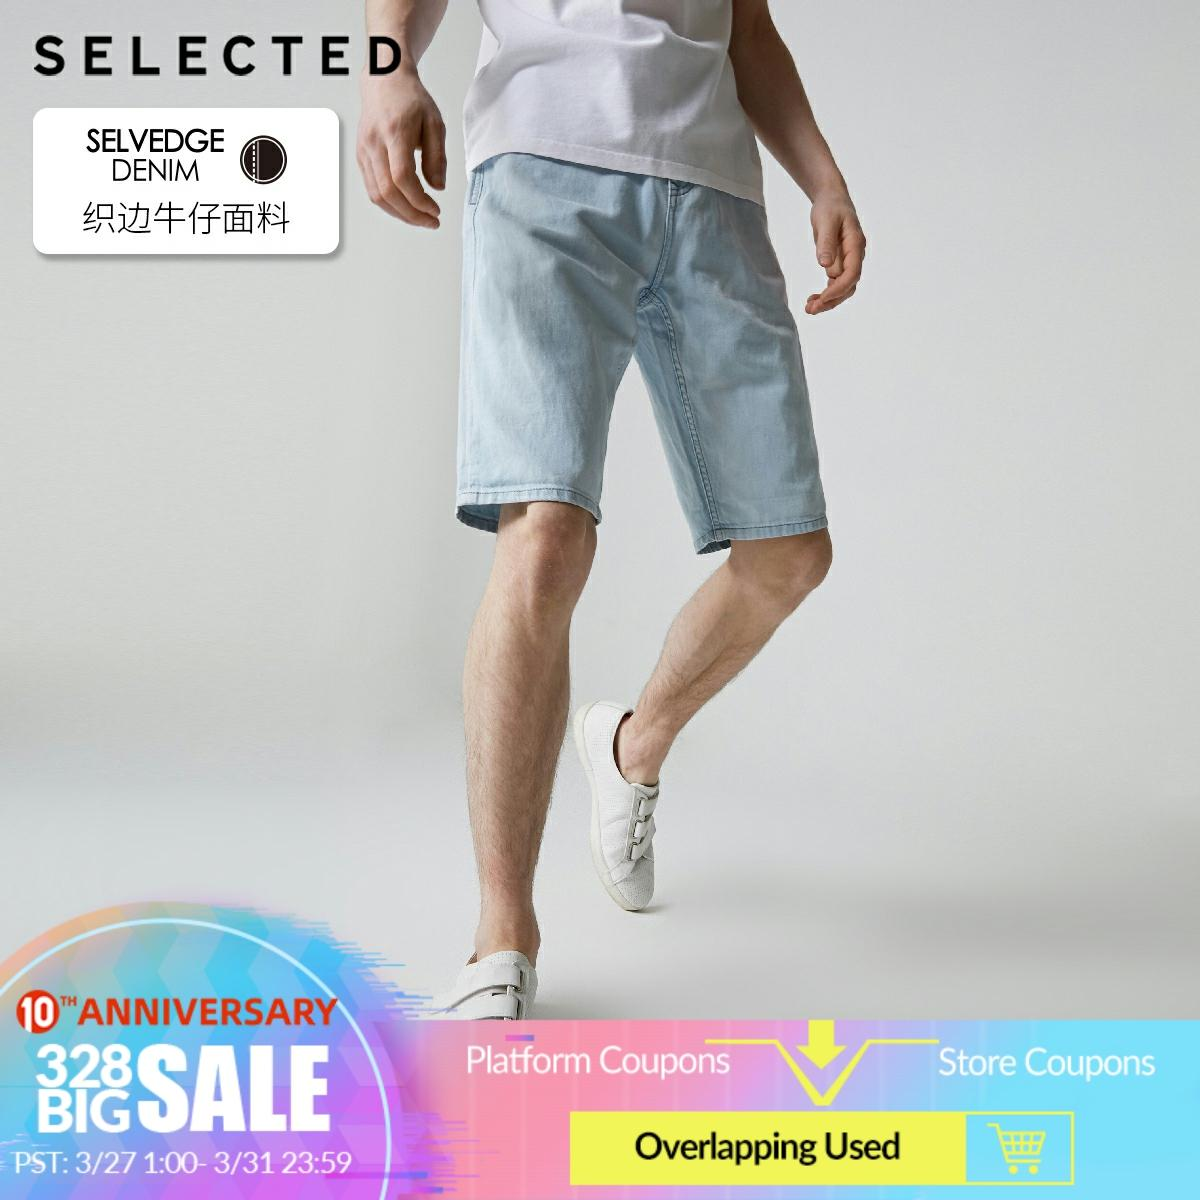 SELECTED Men's Summer Cotton And Linen Selvaged Light Color Denim Shorts C|4192S3509